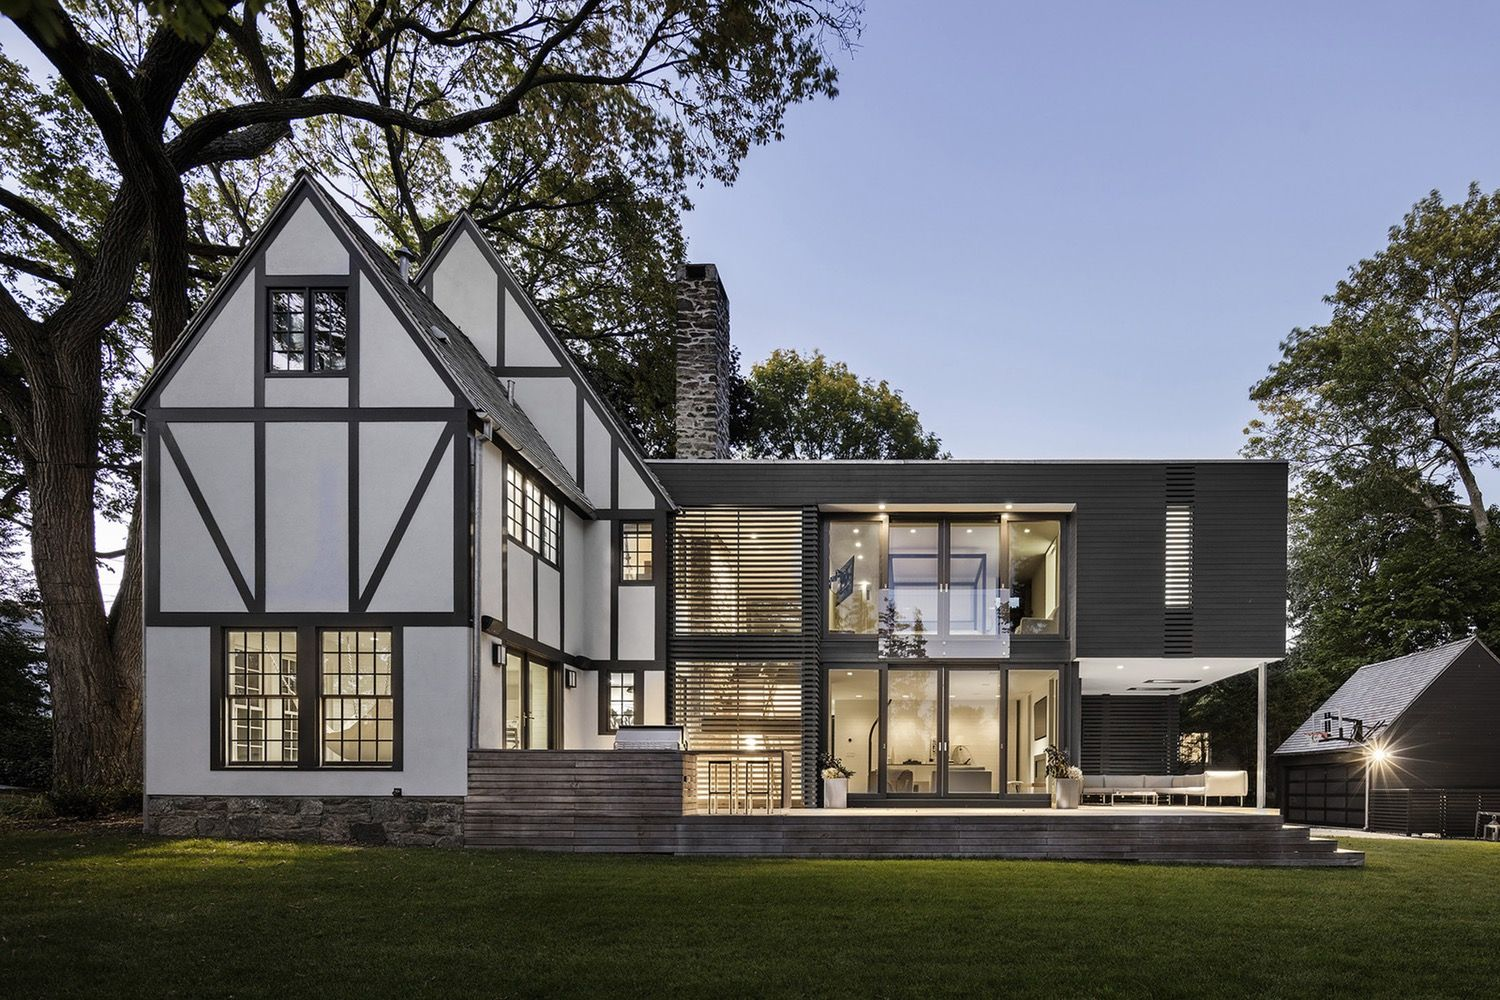 business in the front, party in the back 5 traditional homes thatbusiness in the front, party in the back 5 traditional homes that got super modern additions \u2014 dwell